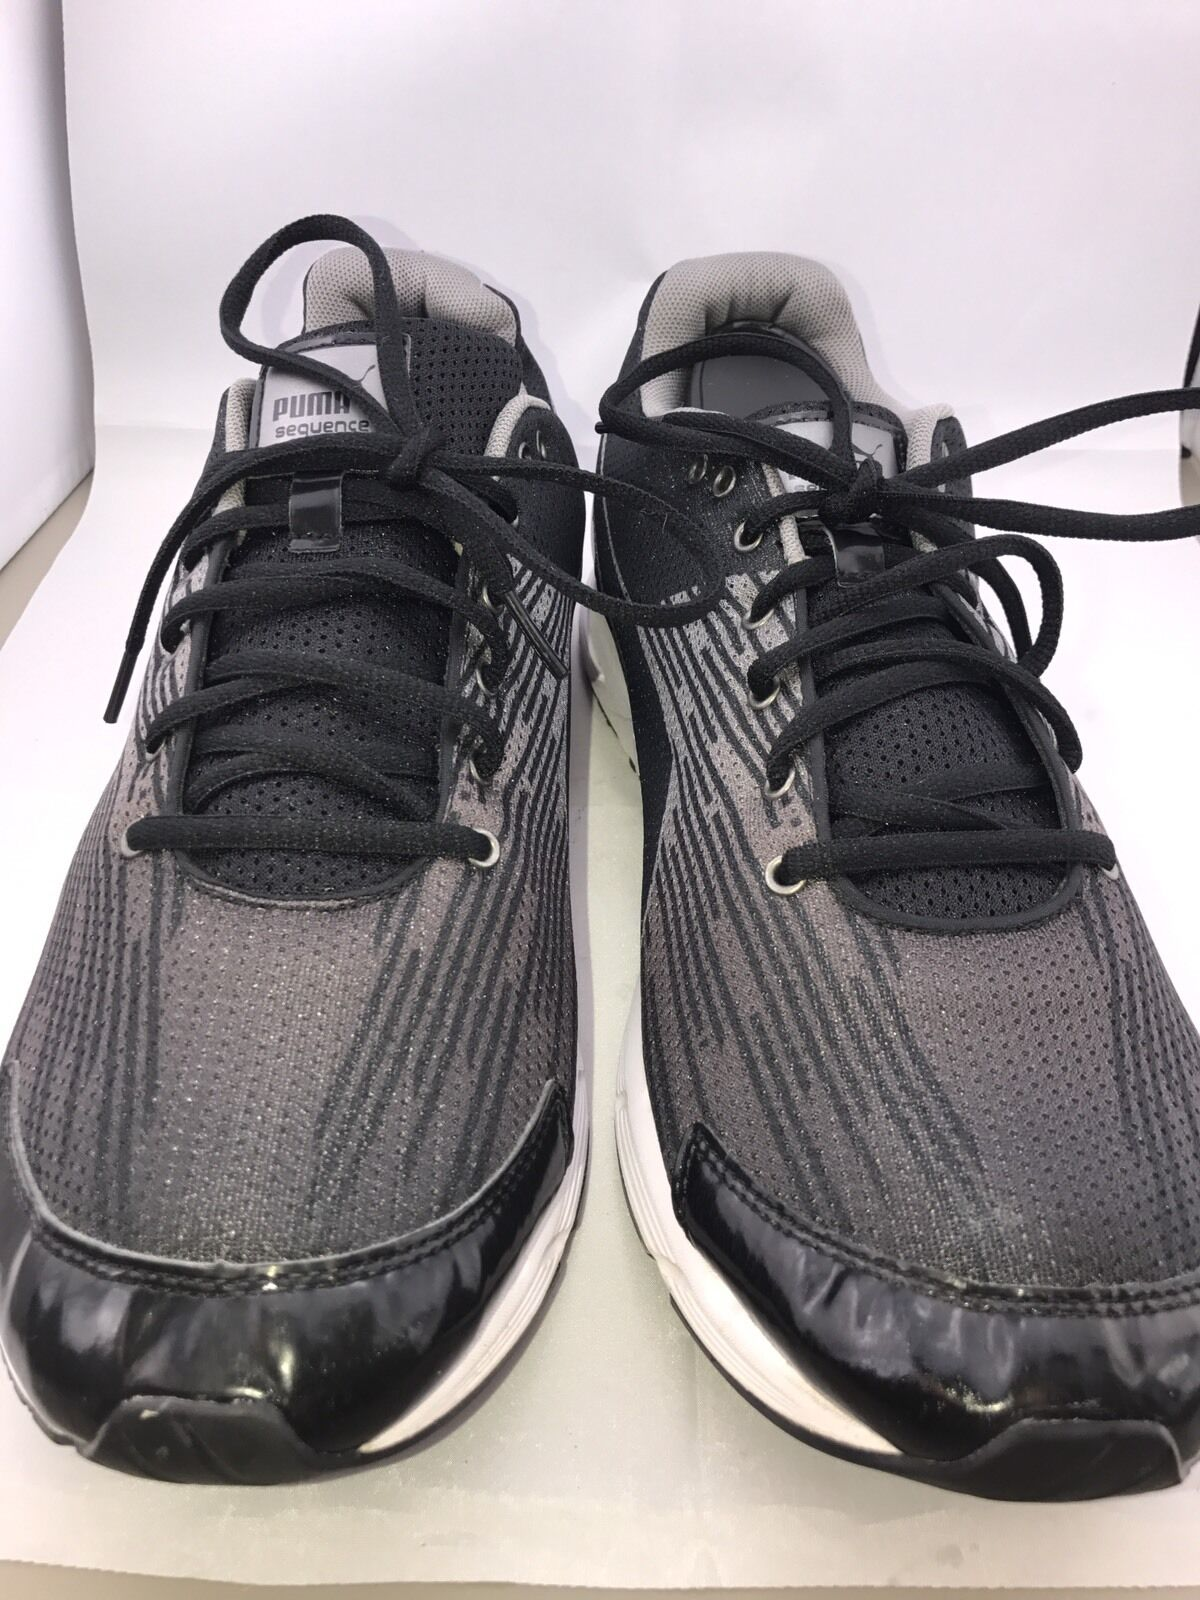 Puma Men's Black Gray Running Athletic Shoe size 13 Great discount